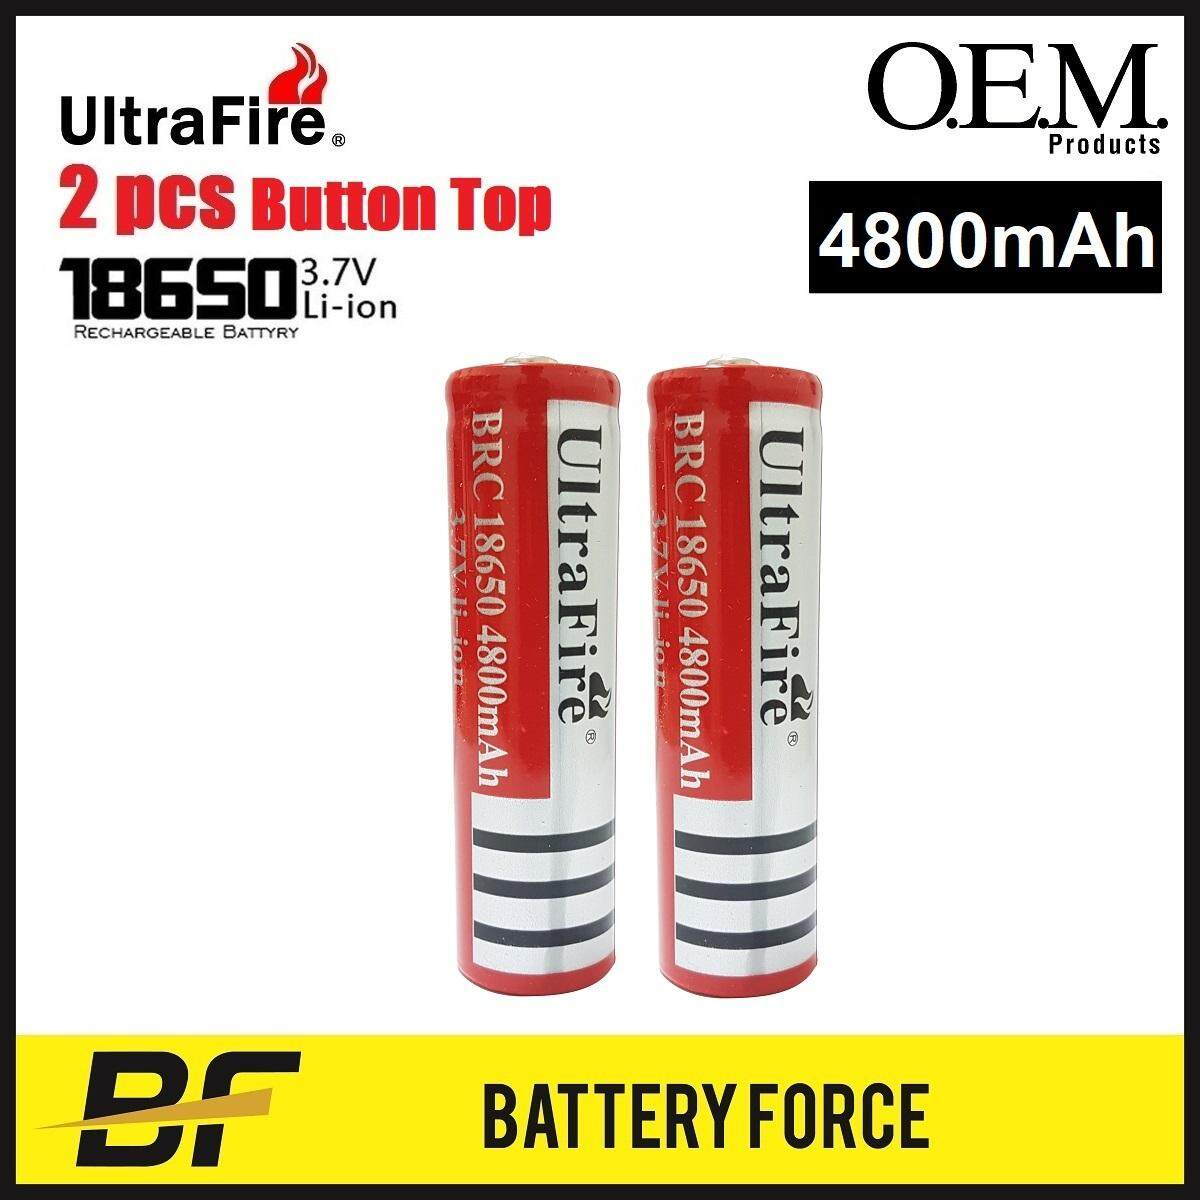 3.7v 18650 Ultrafire 4800mah Button Top Rechargeable Lithium Ion Battery Brc By Battery-Force.